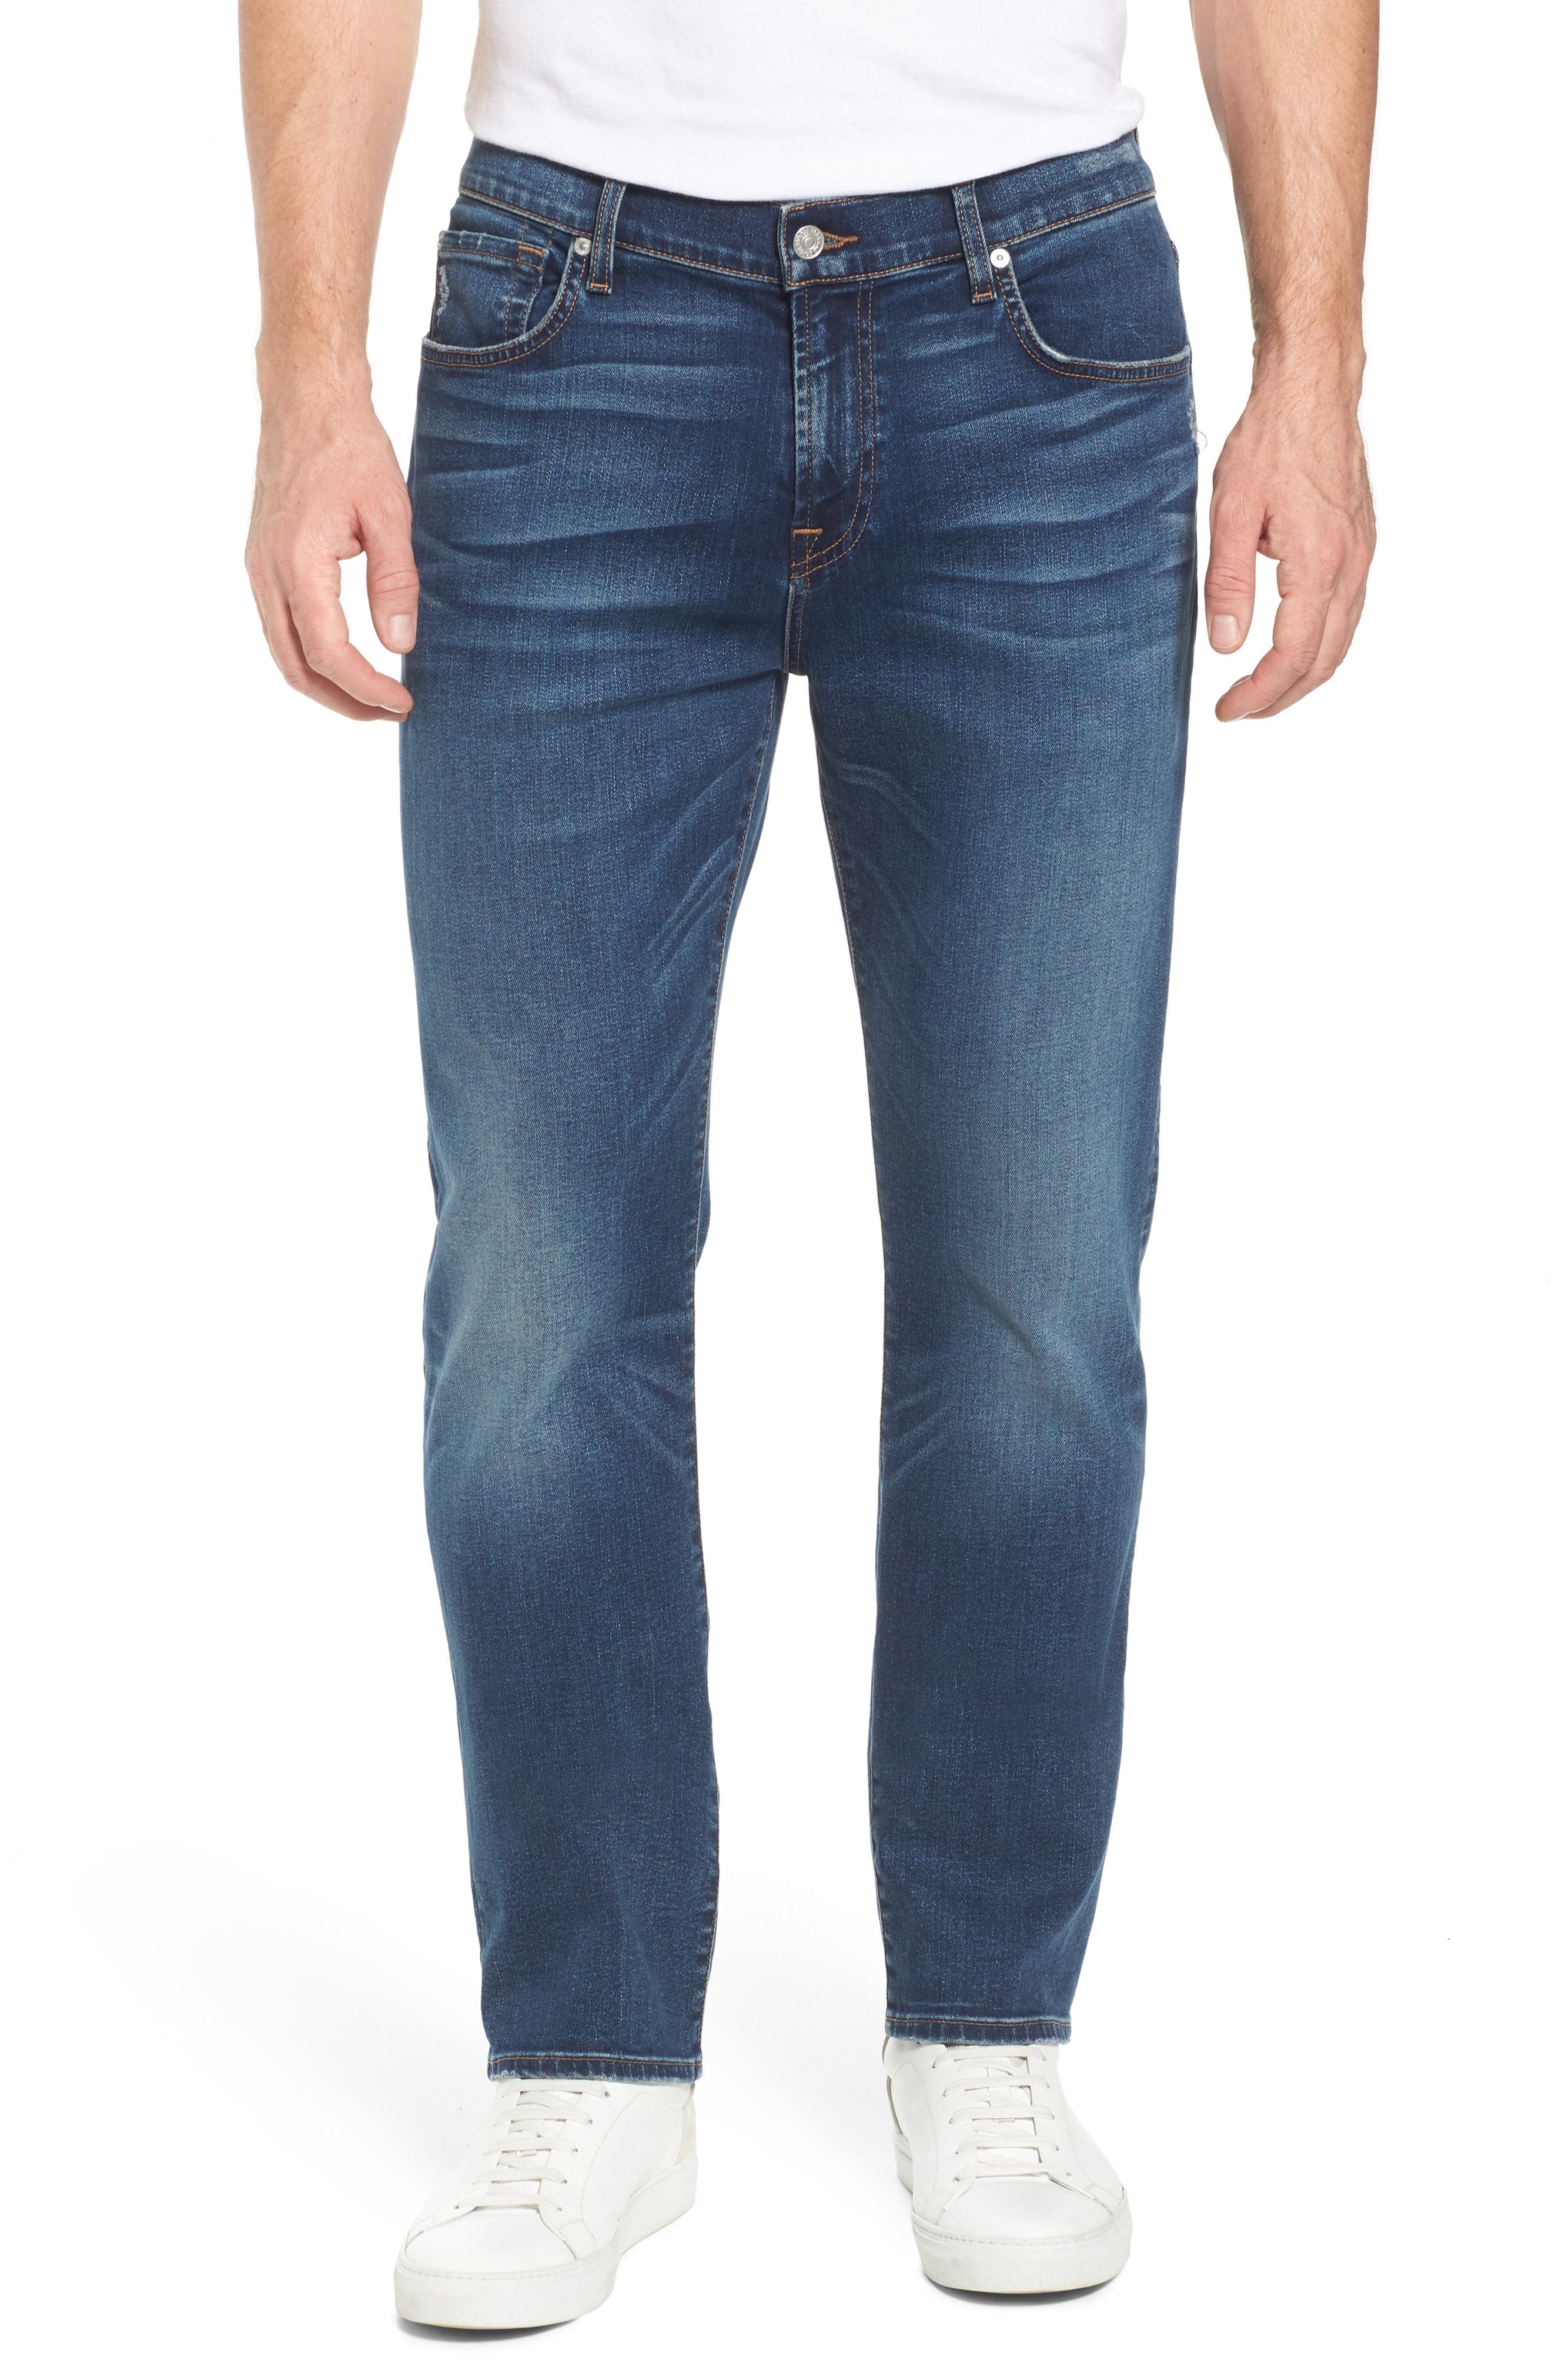 7 FOR ALL MANKIND<SUP>®</SUP>, The Straight - Luxe Performance Slim Straight Leg Jeans, Main thumbnail 1, color, LUXE PERFORMANCE UNION